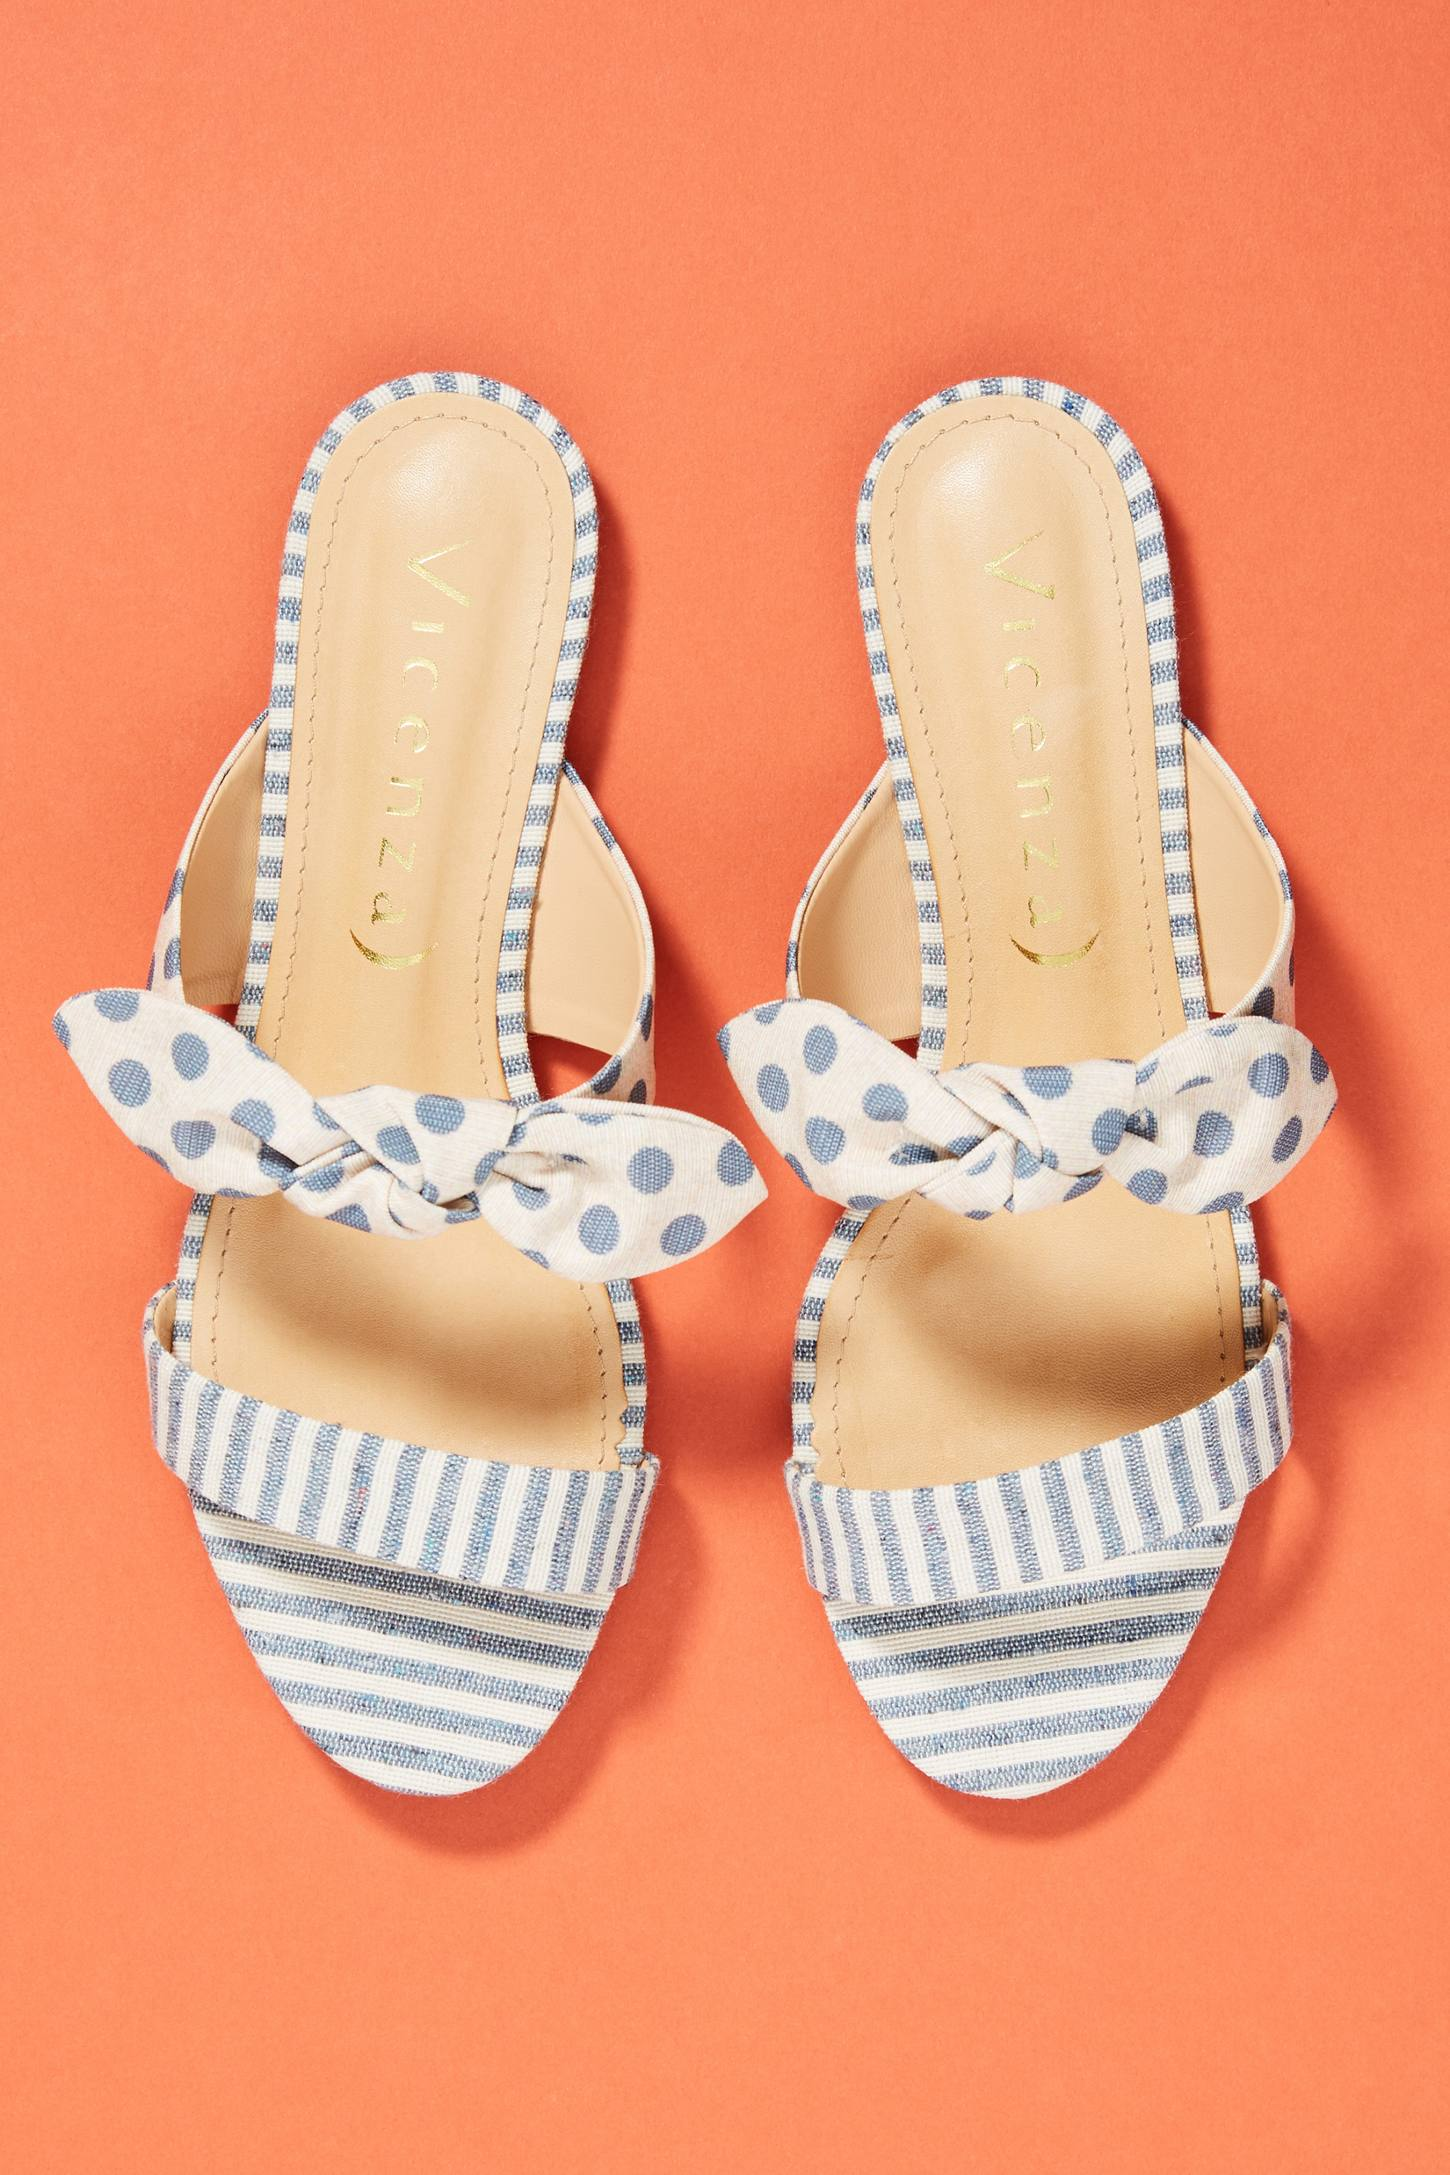 Vicenza Striped + Dotted Slide Sandals | Anthropologie